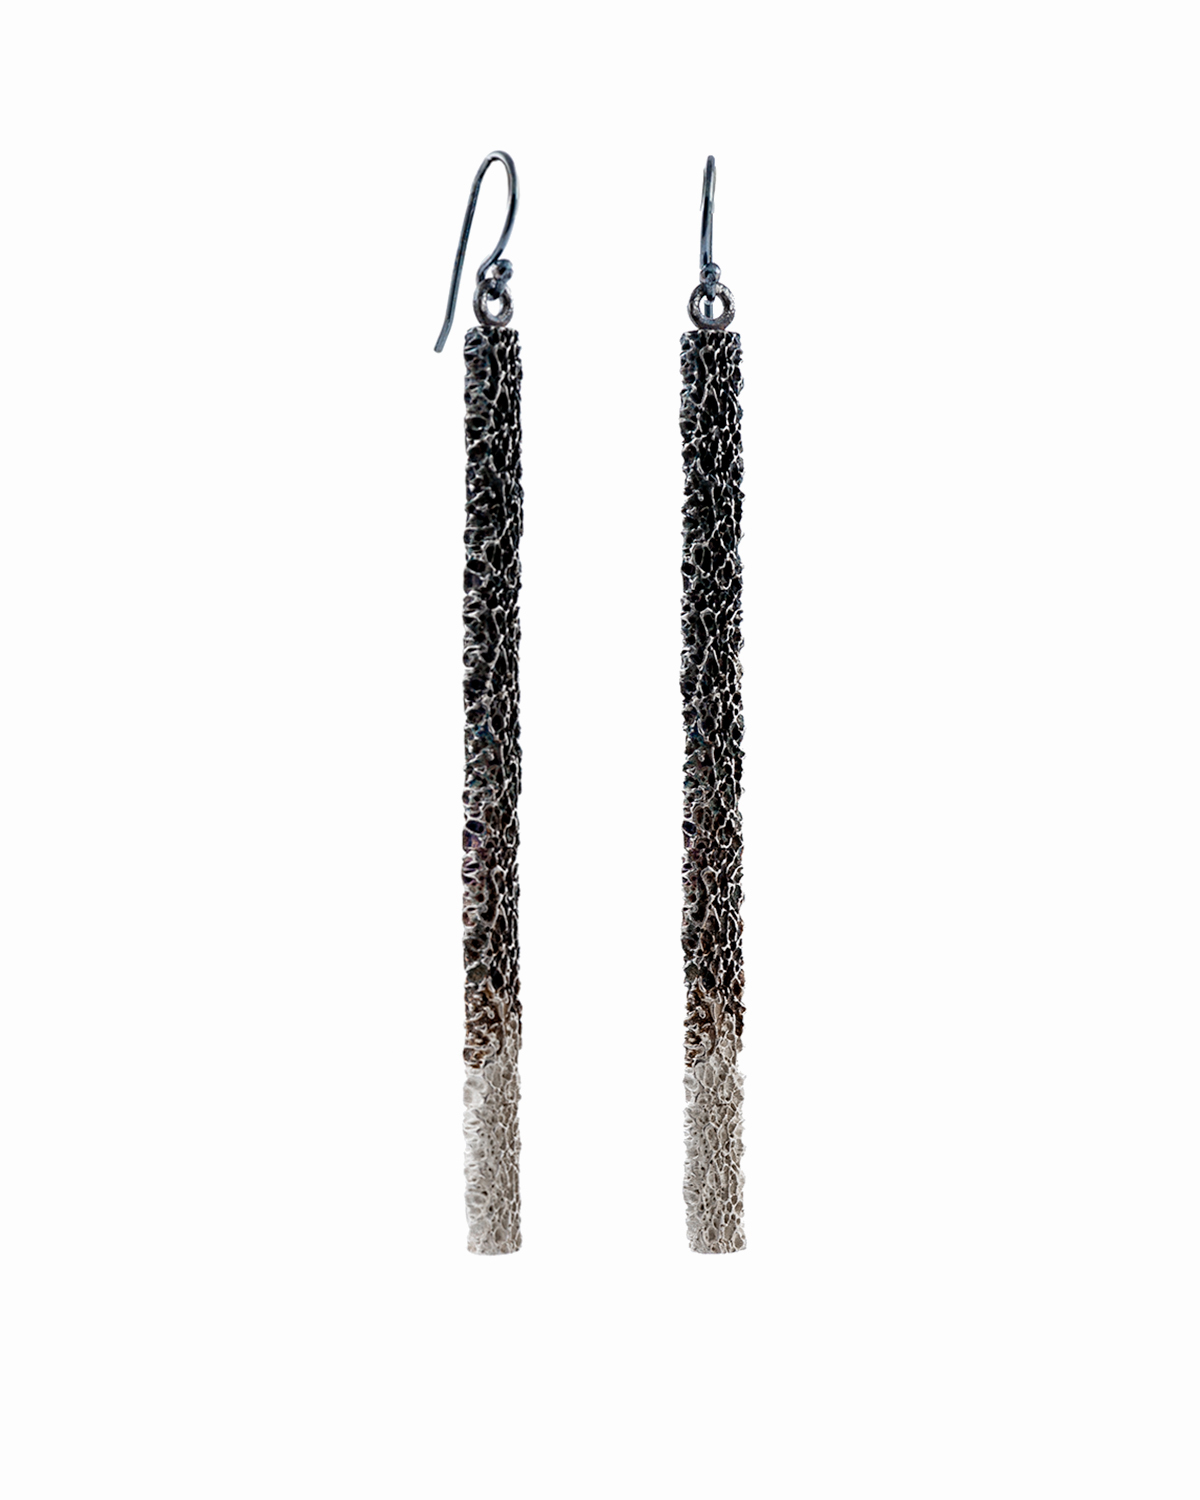 Gradient Long Column Earrings.jpg